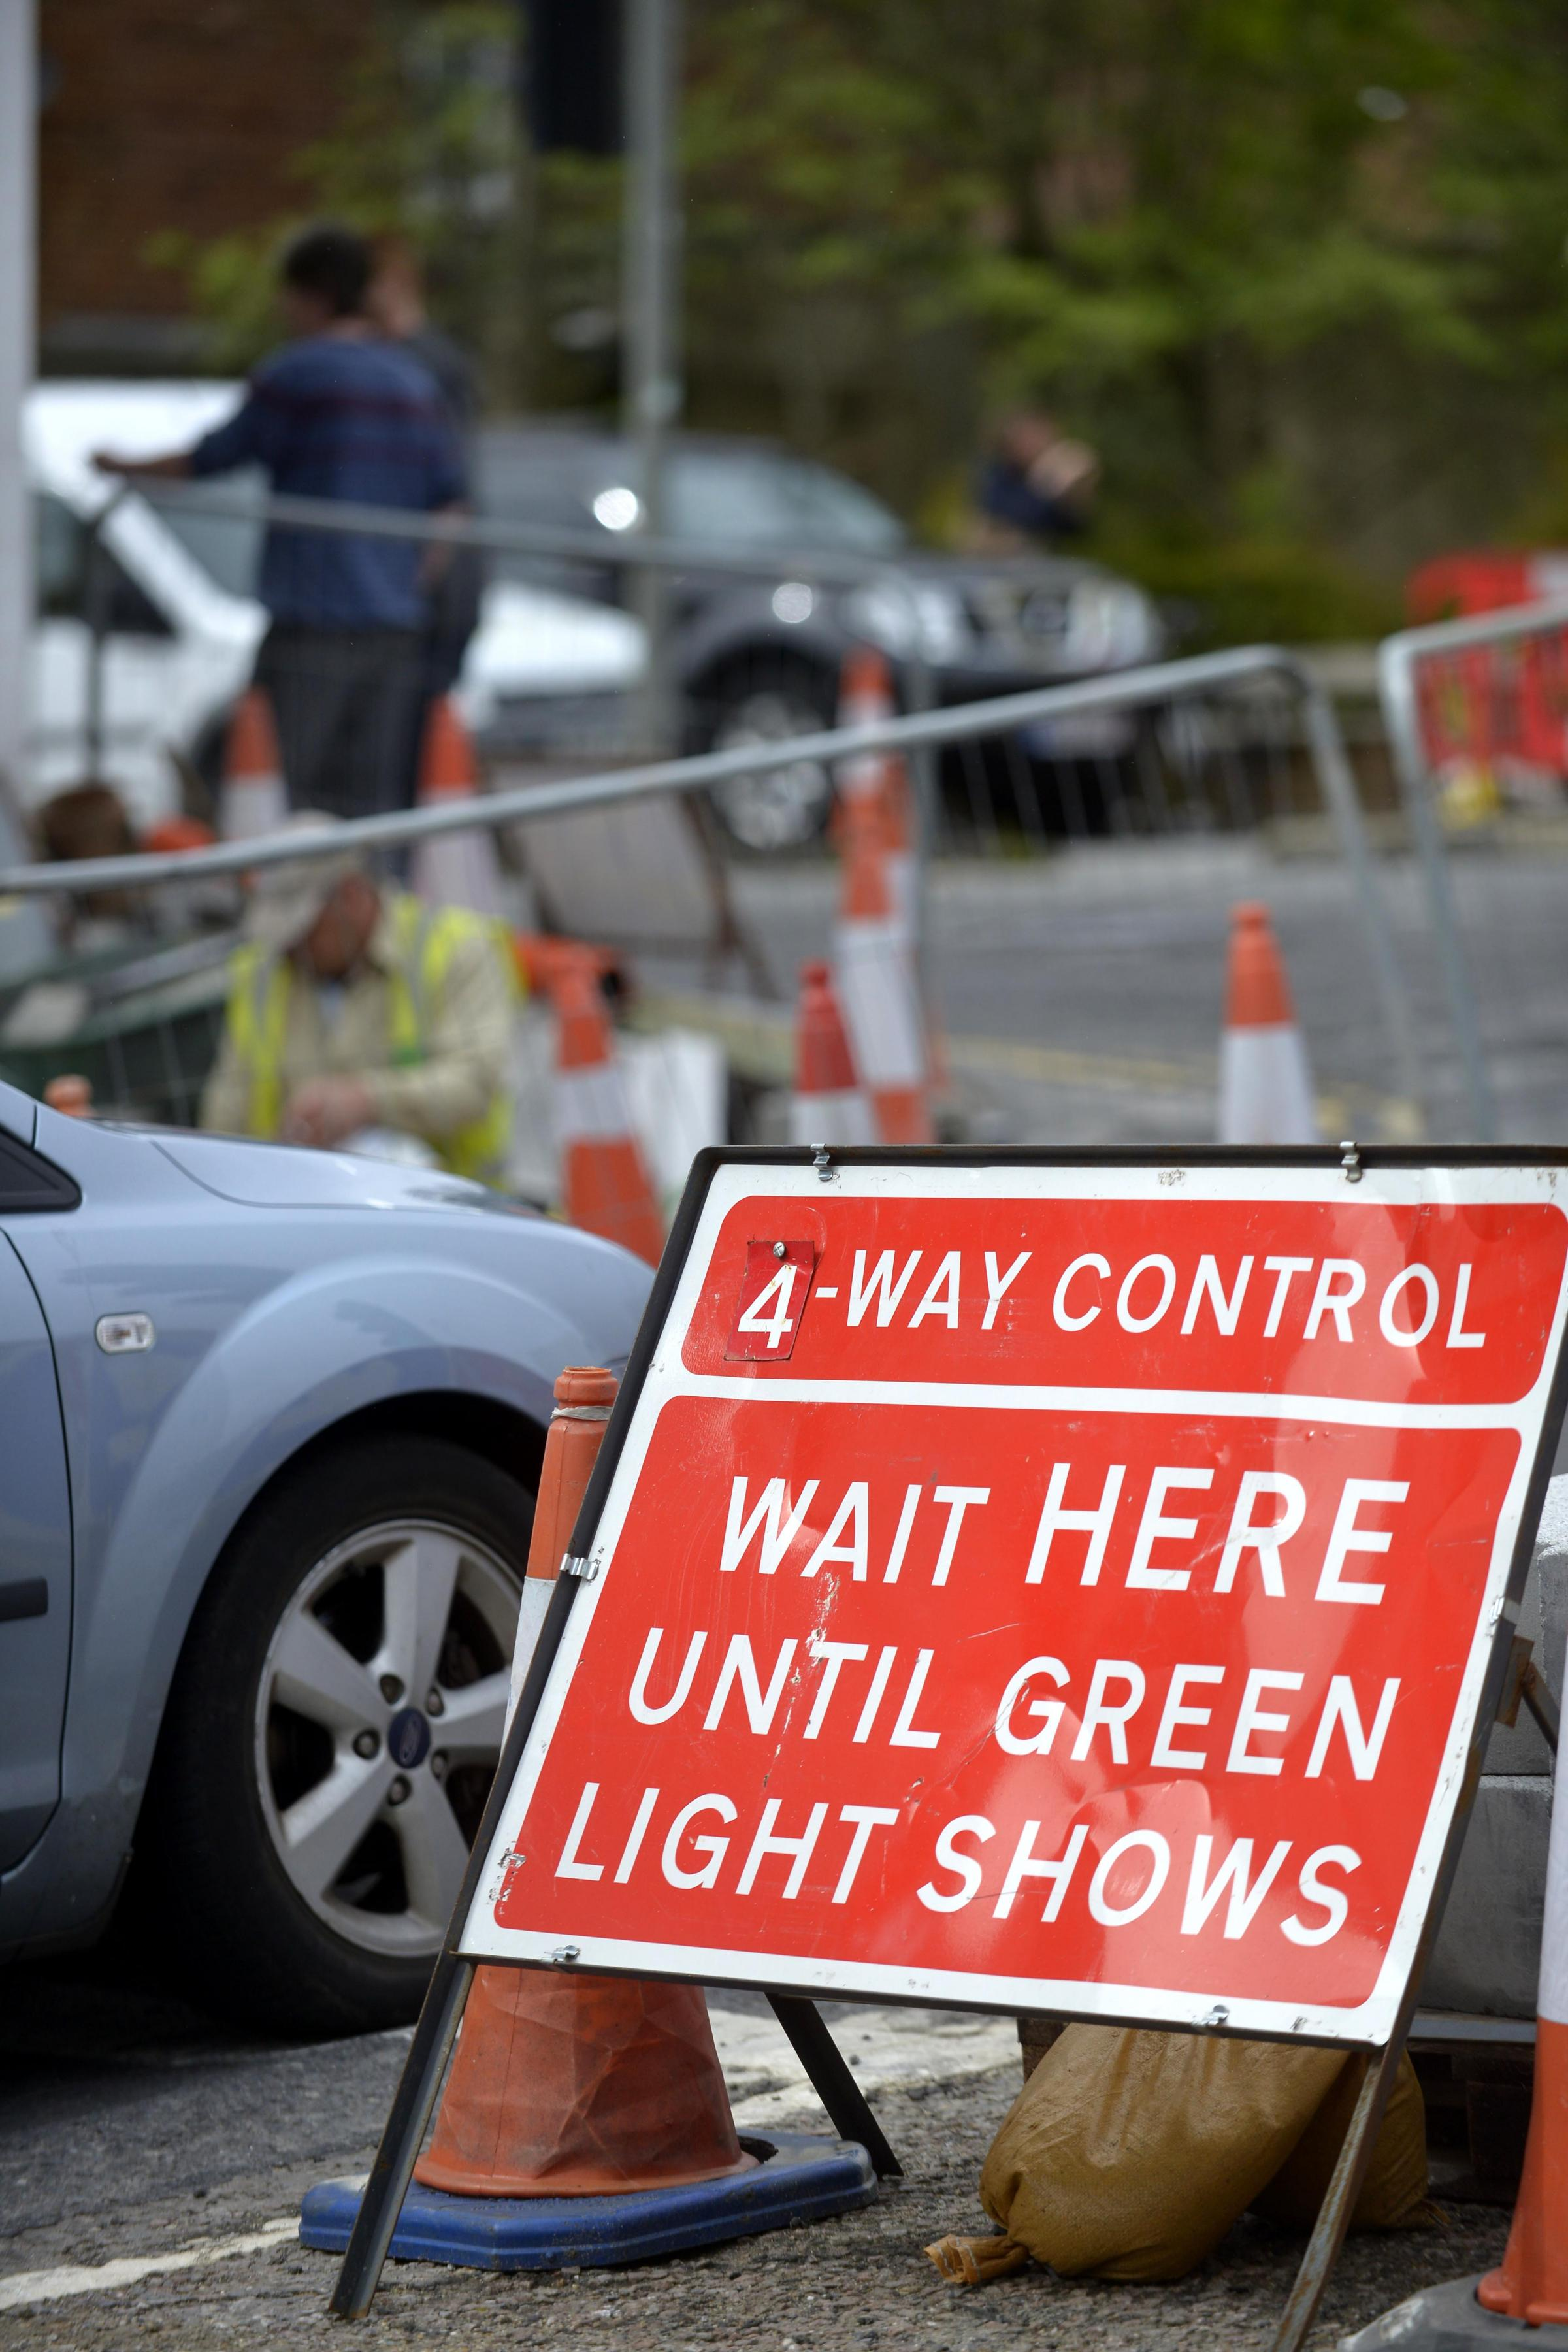 Roadworks meant many Wivey Link